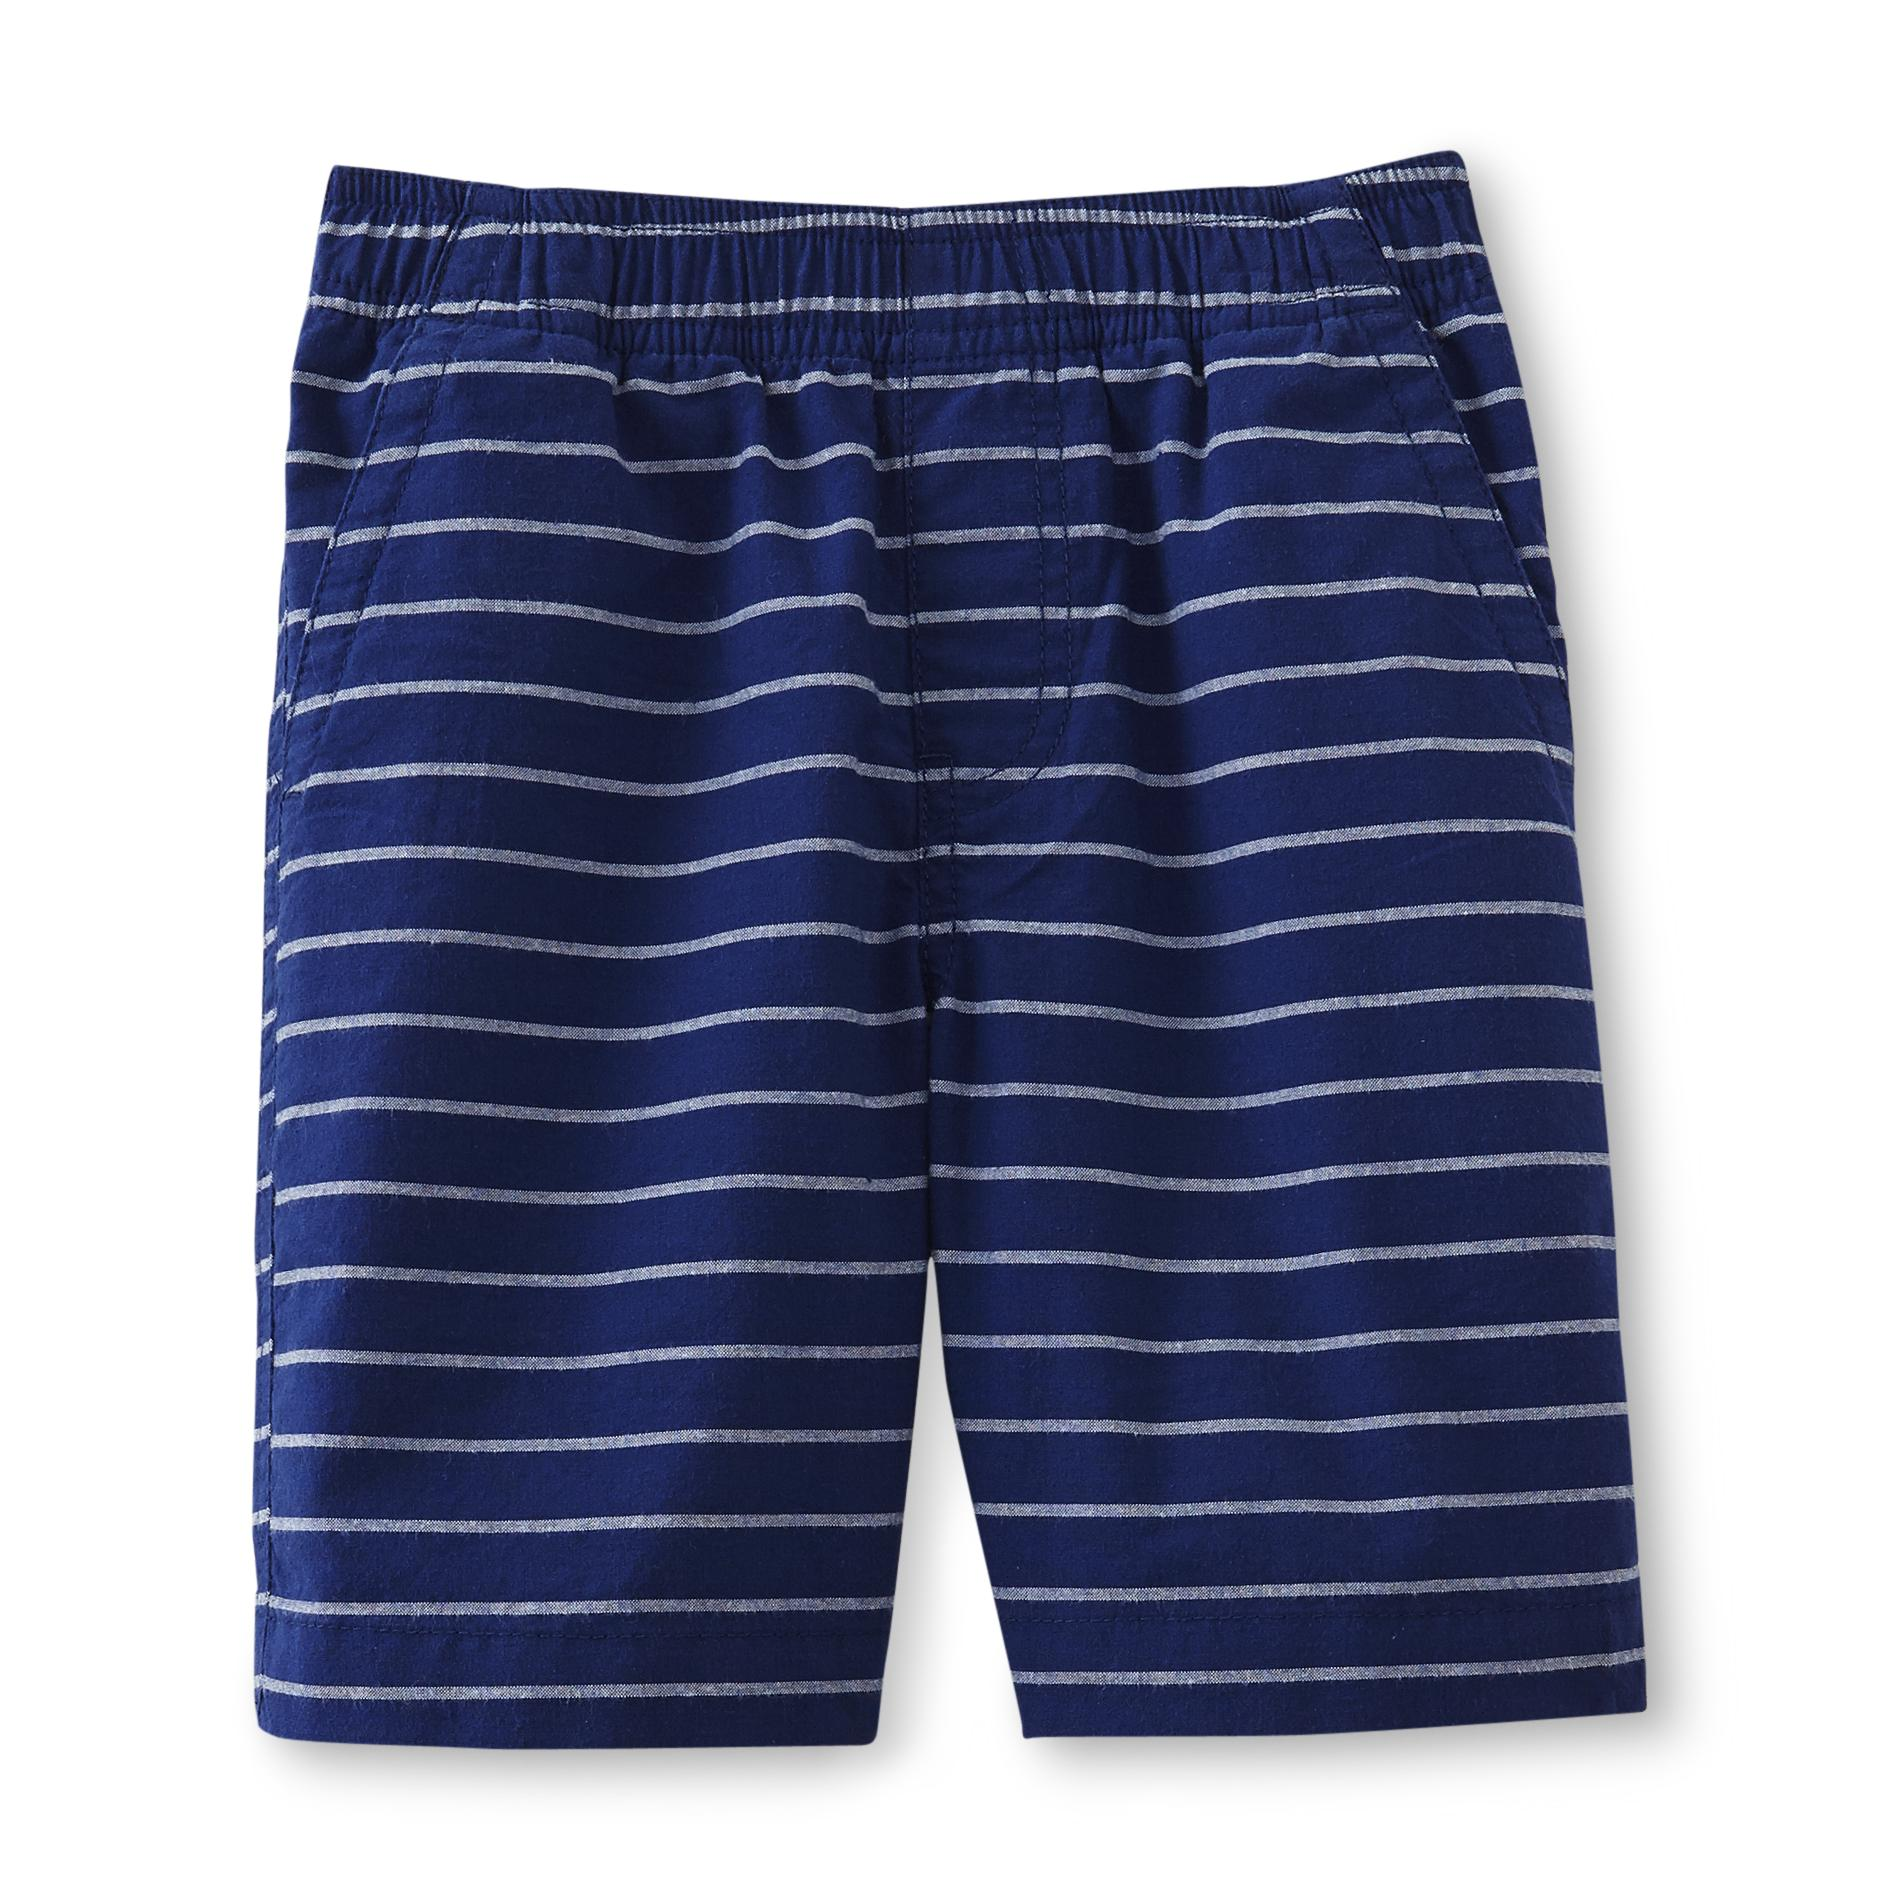 Basic Editions Boy's Comfort-Waist Woven Shorts - Striped